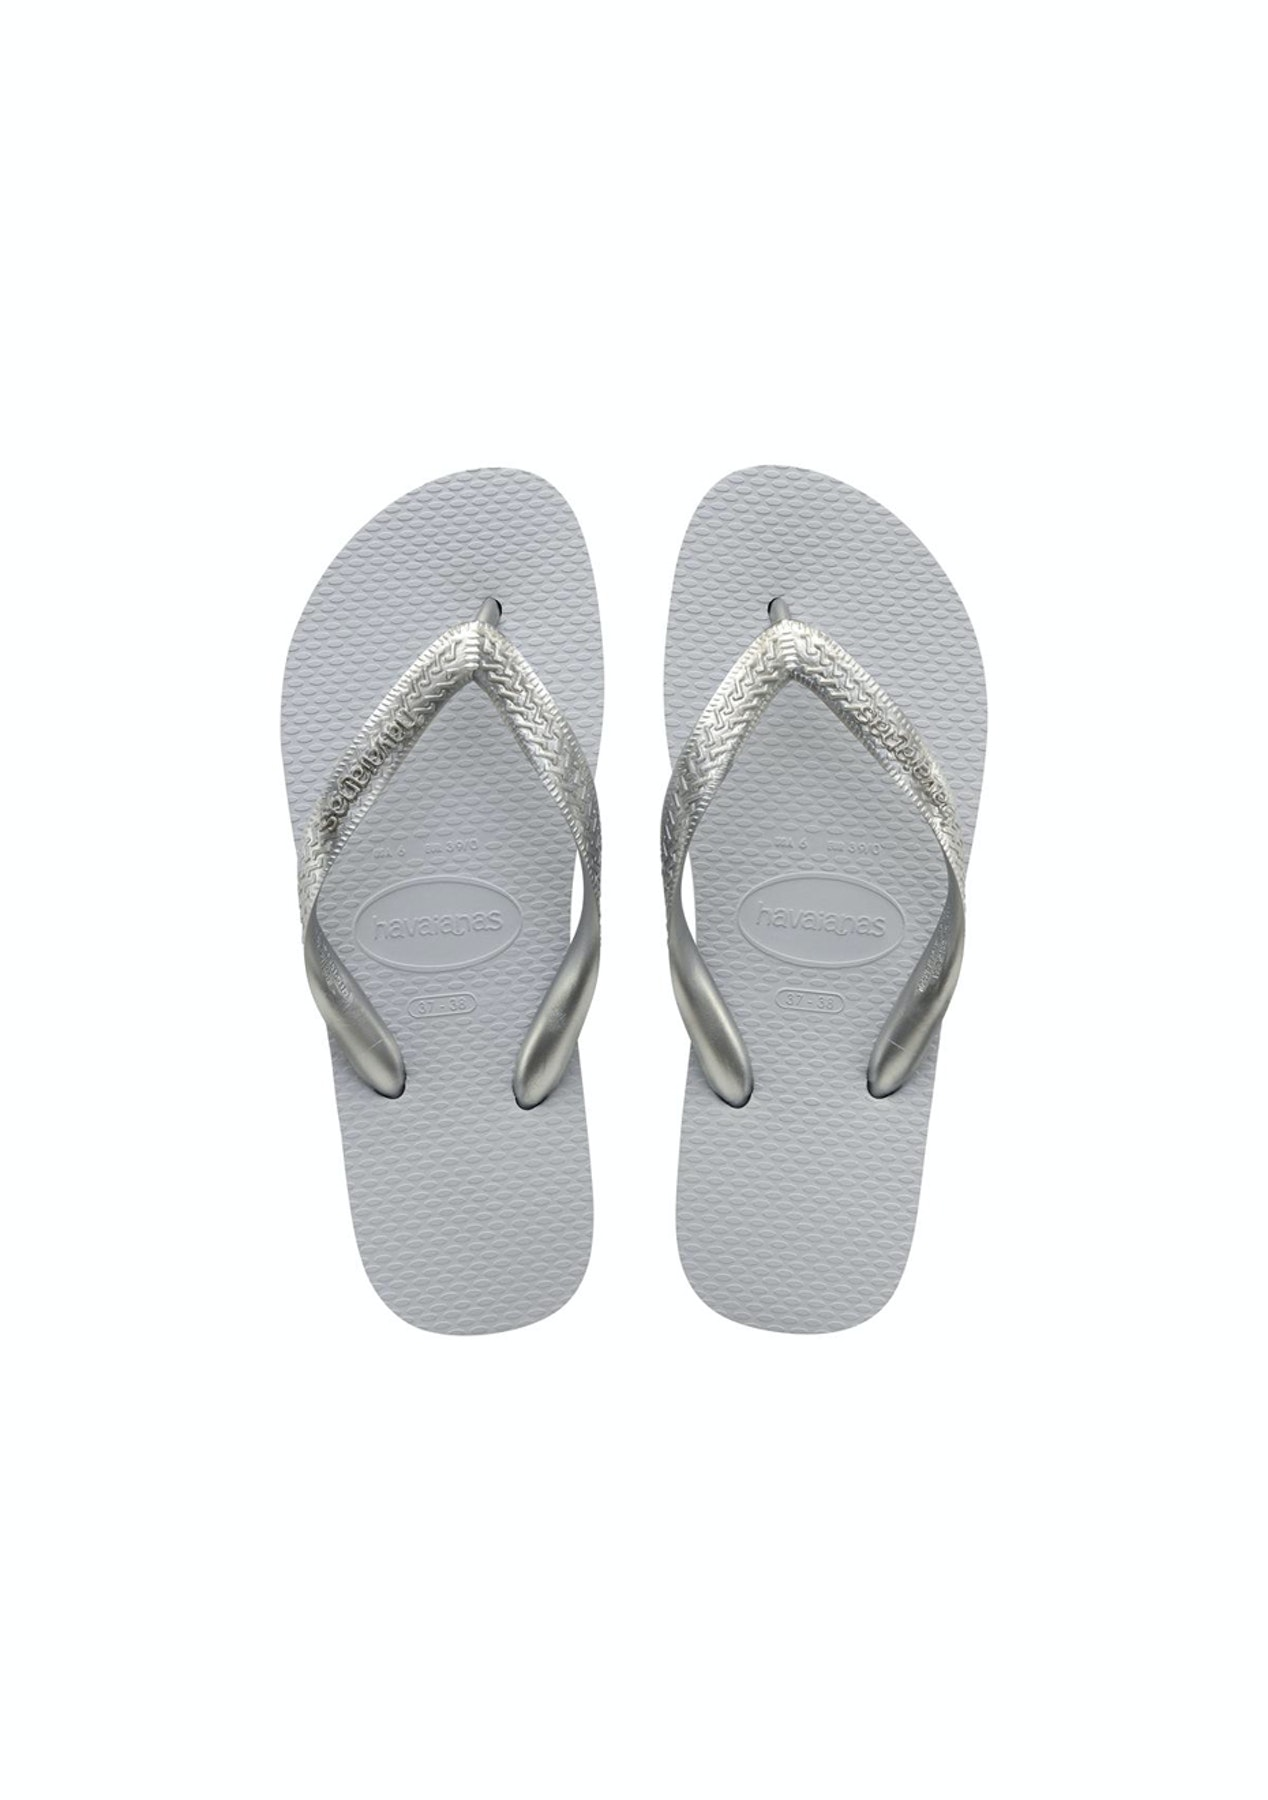 90afa7a0be5b3c Havaianas - Color Mix 3499 Ice Grey Silver - Havaianas - Onceit